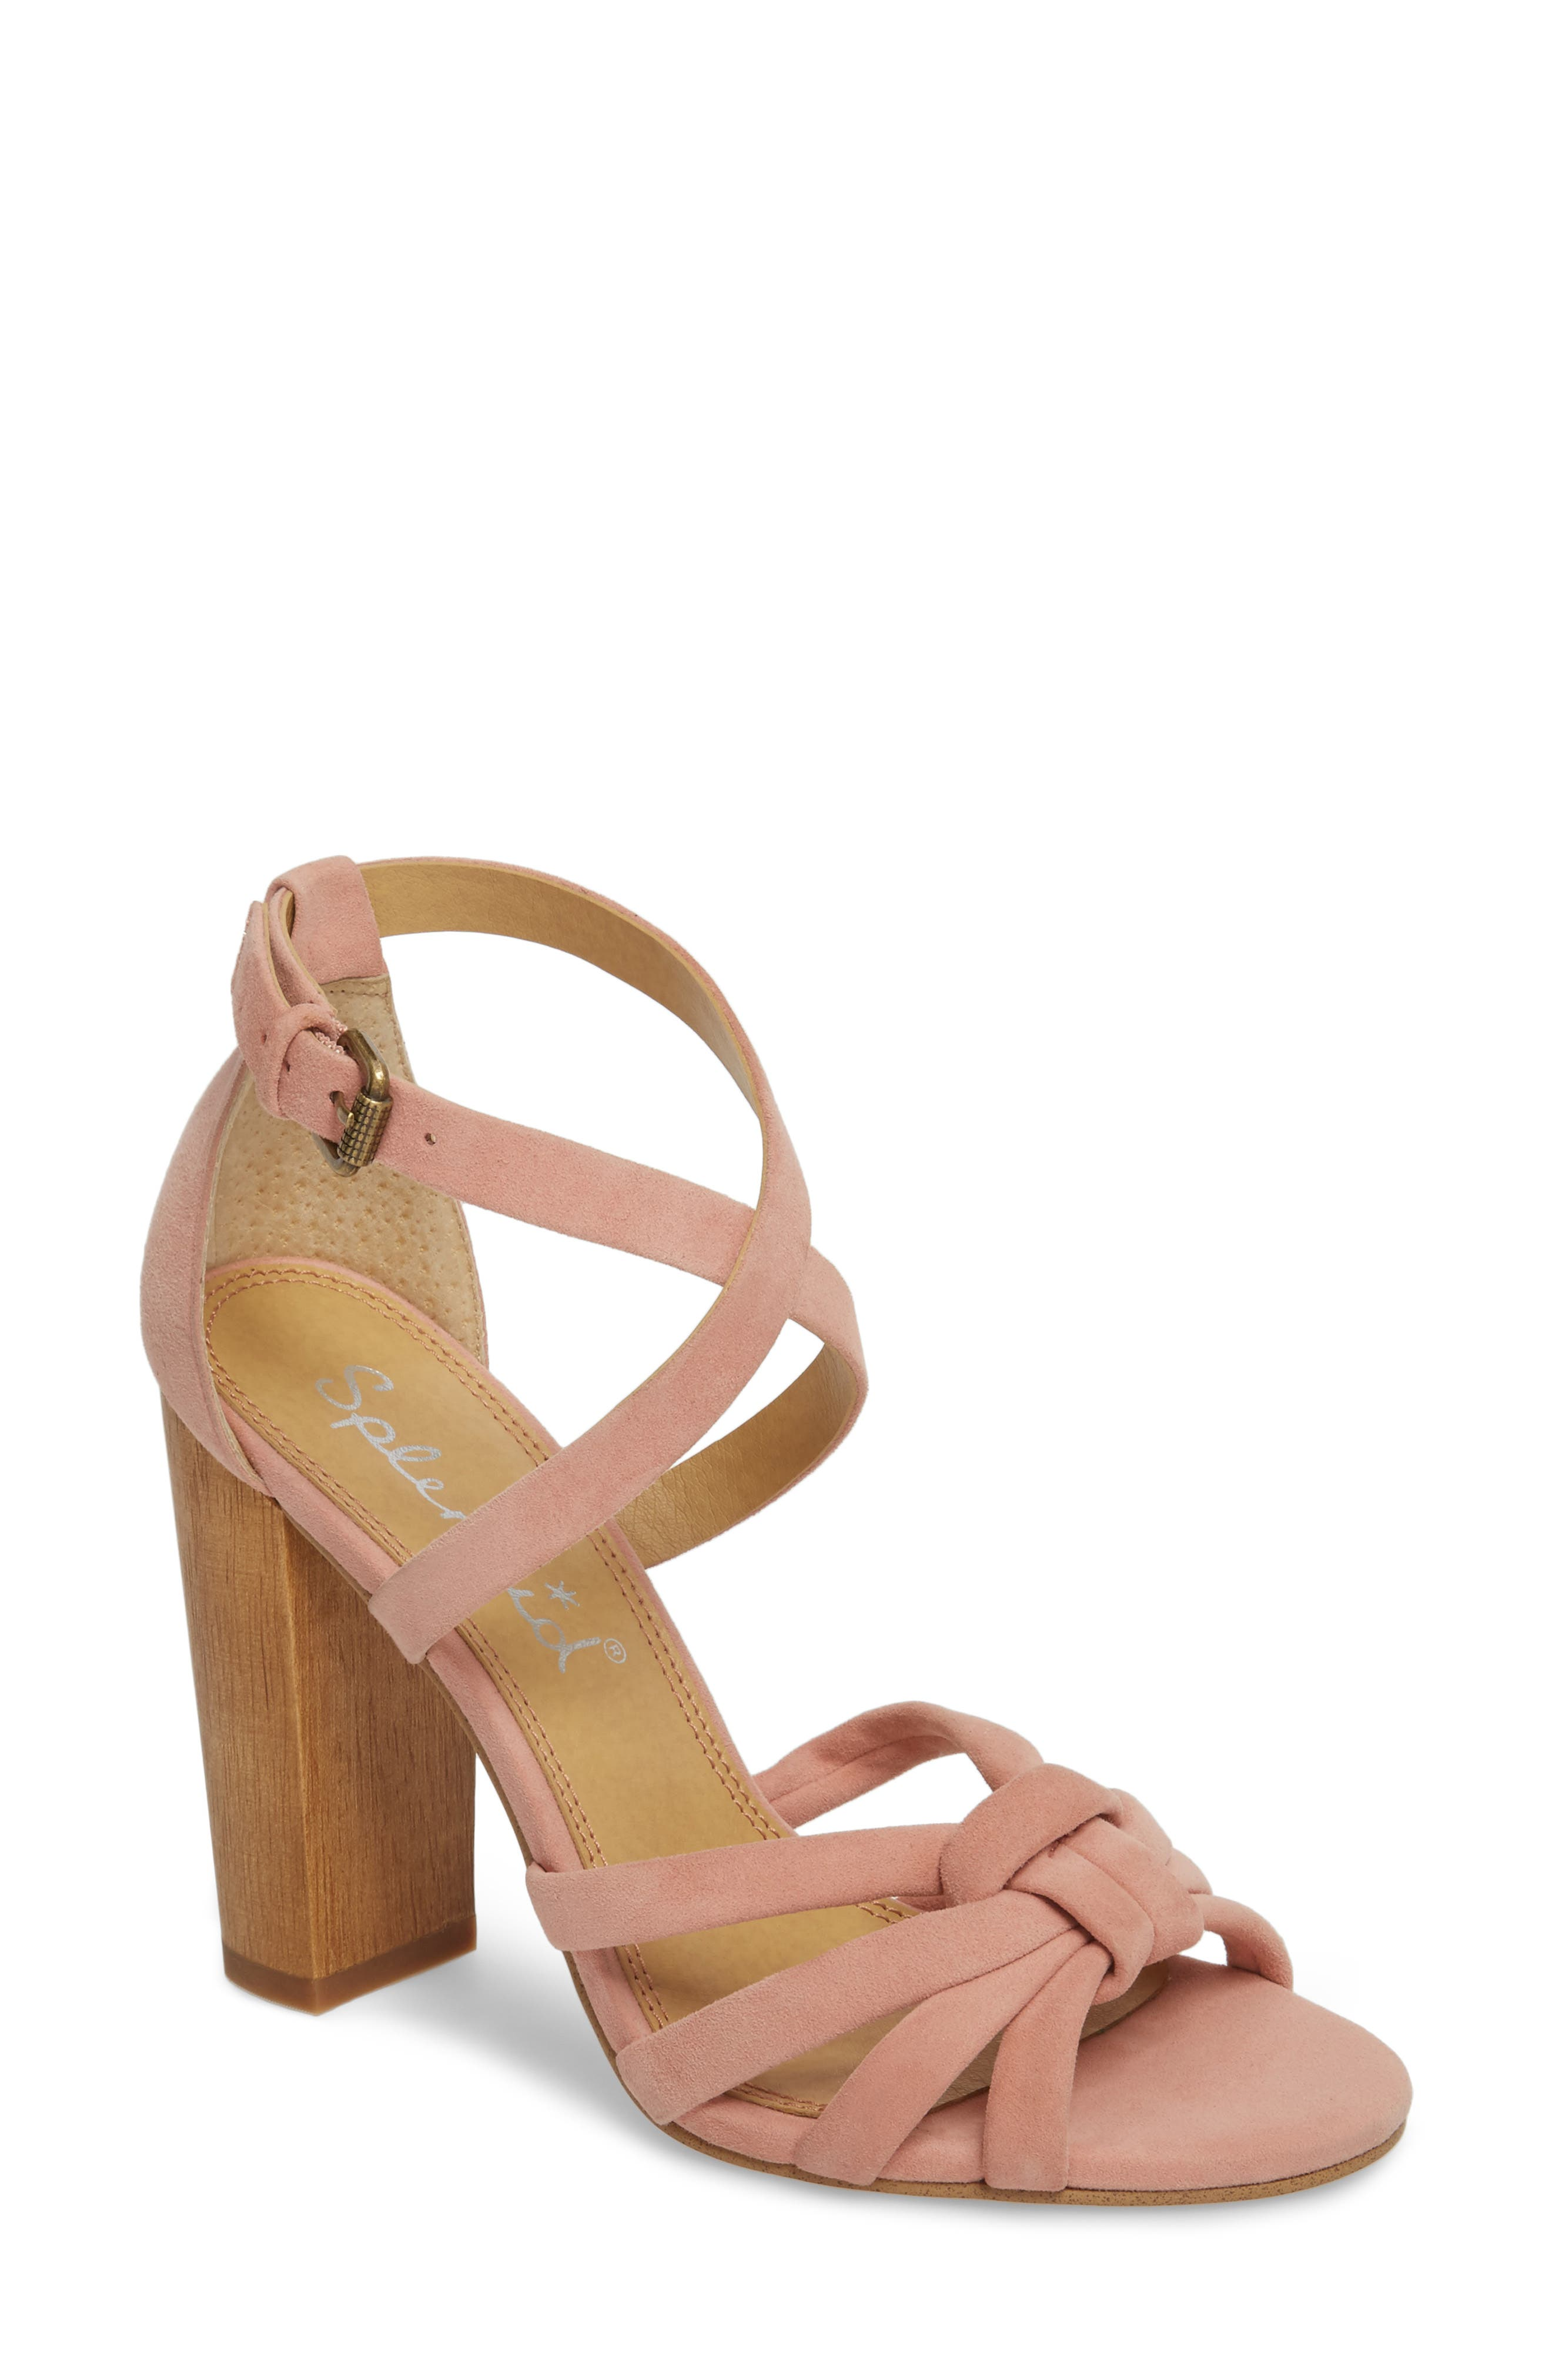 Faris Block Heel Sandal,                             Main thumbnail 1, color,                             Blush Suede